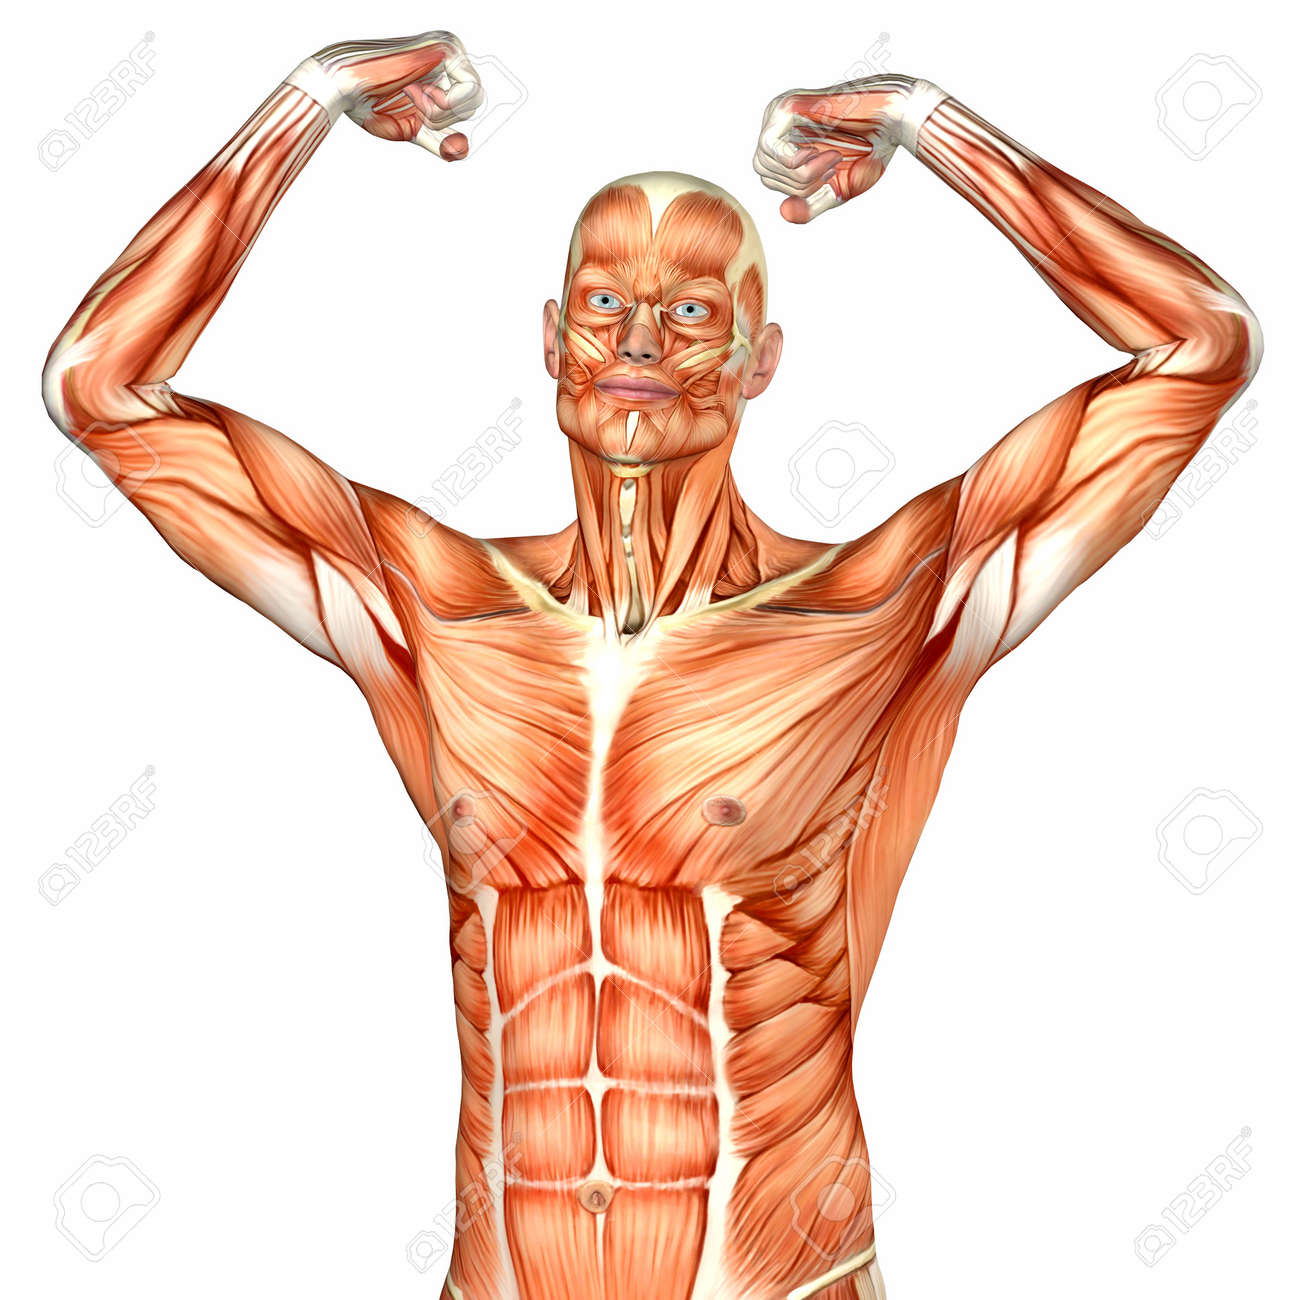 Illustration Of The Anatomy Of The Male Human Upper Body Isolated ...